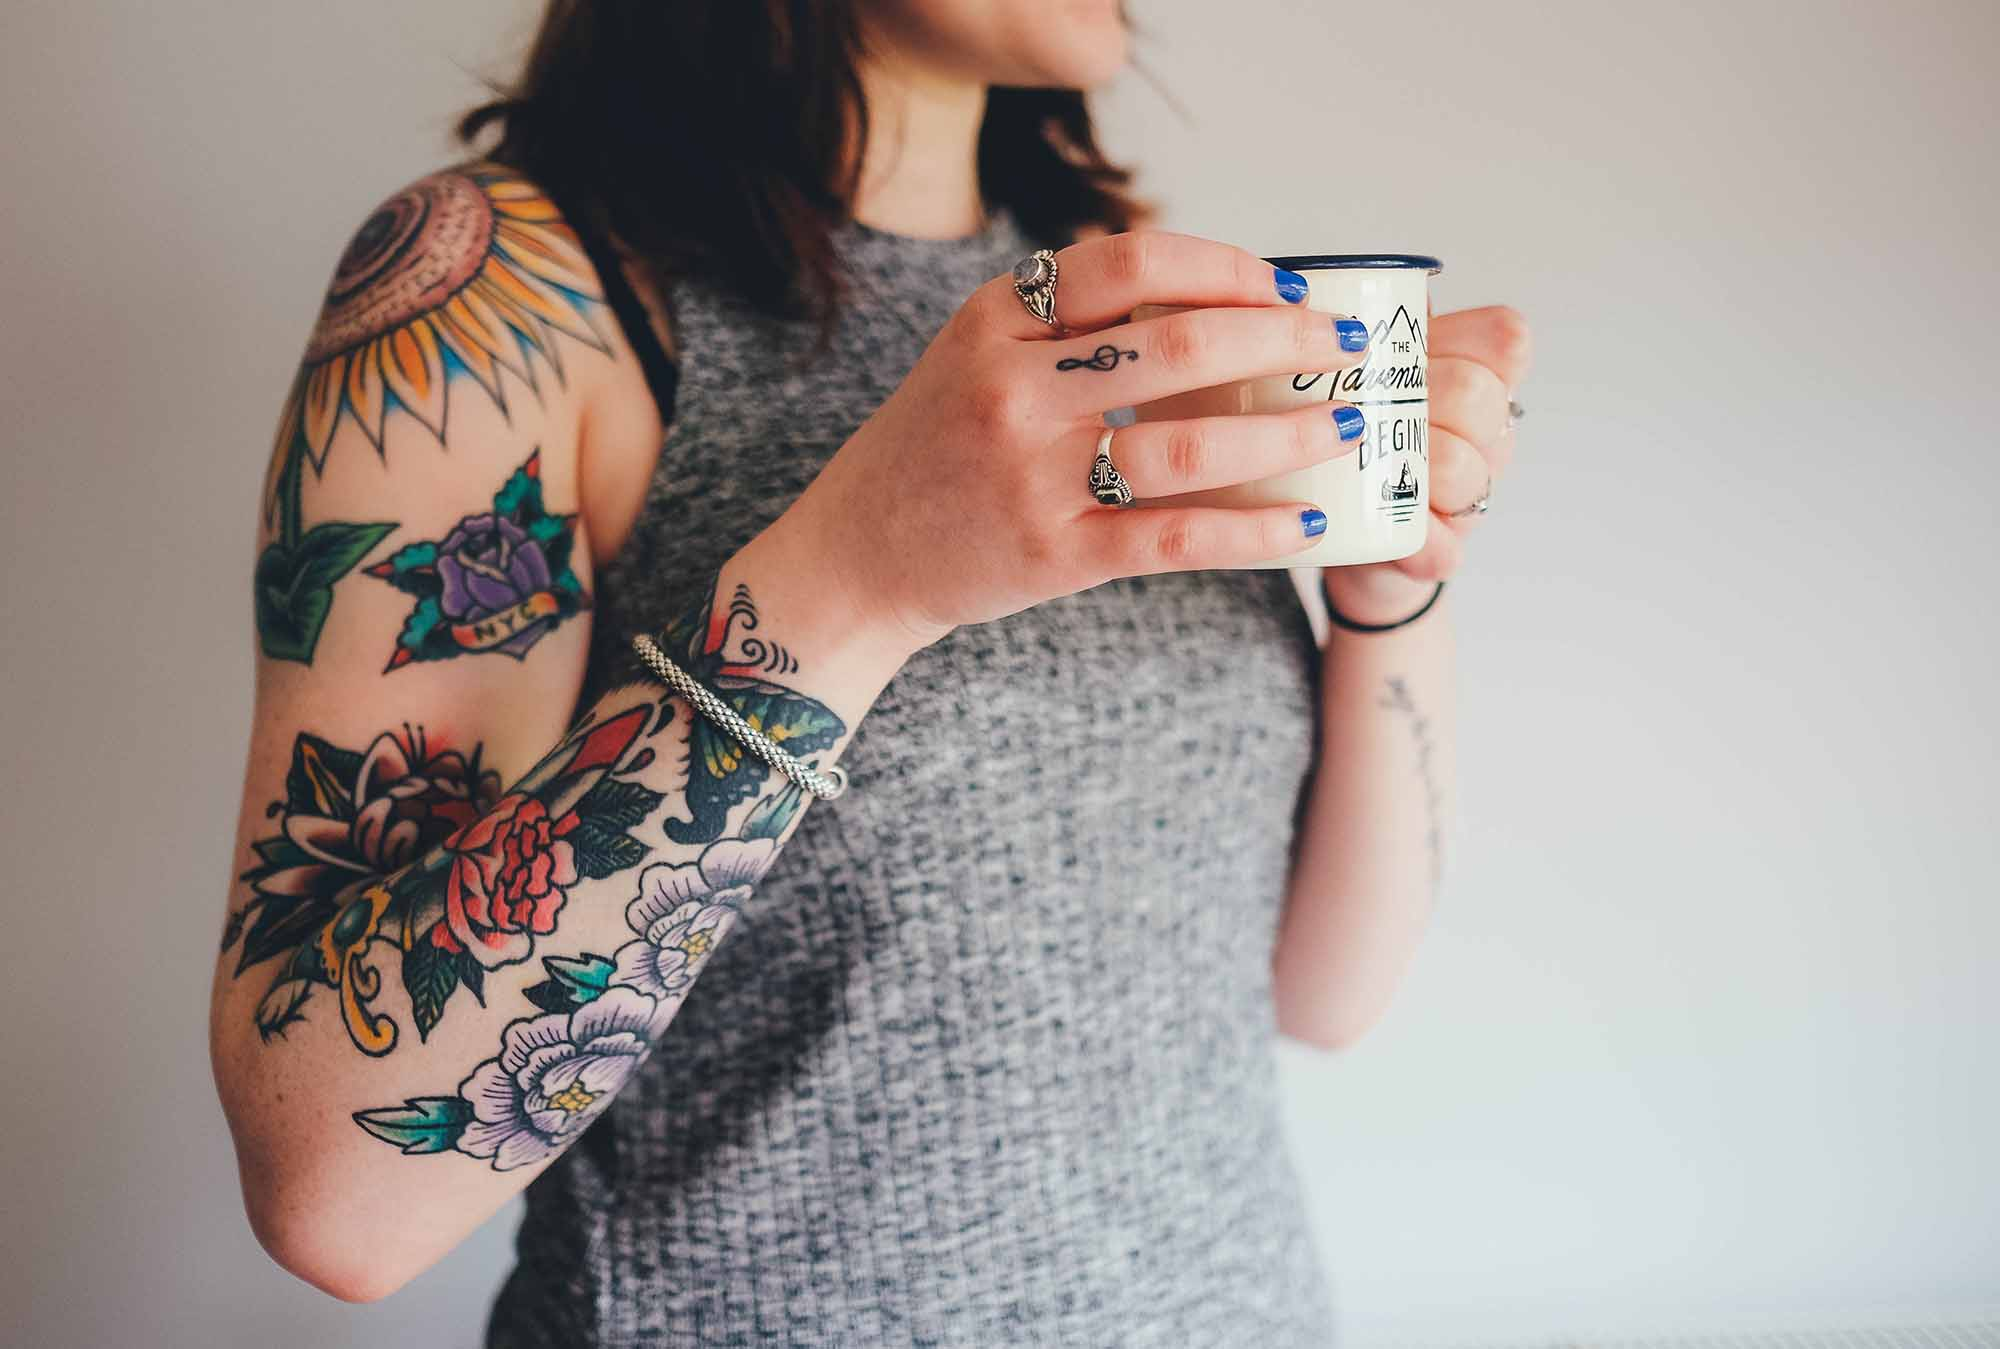 What You Need to Know Before Getting a Tattoo